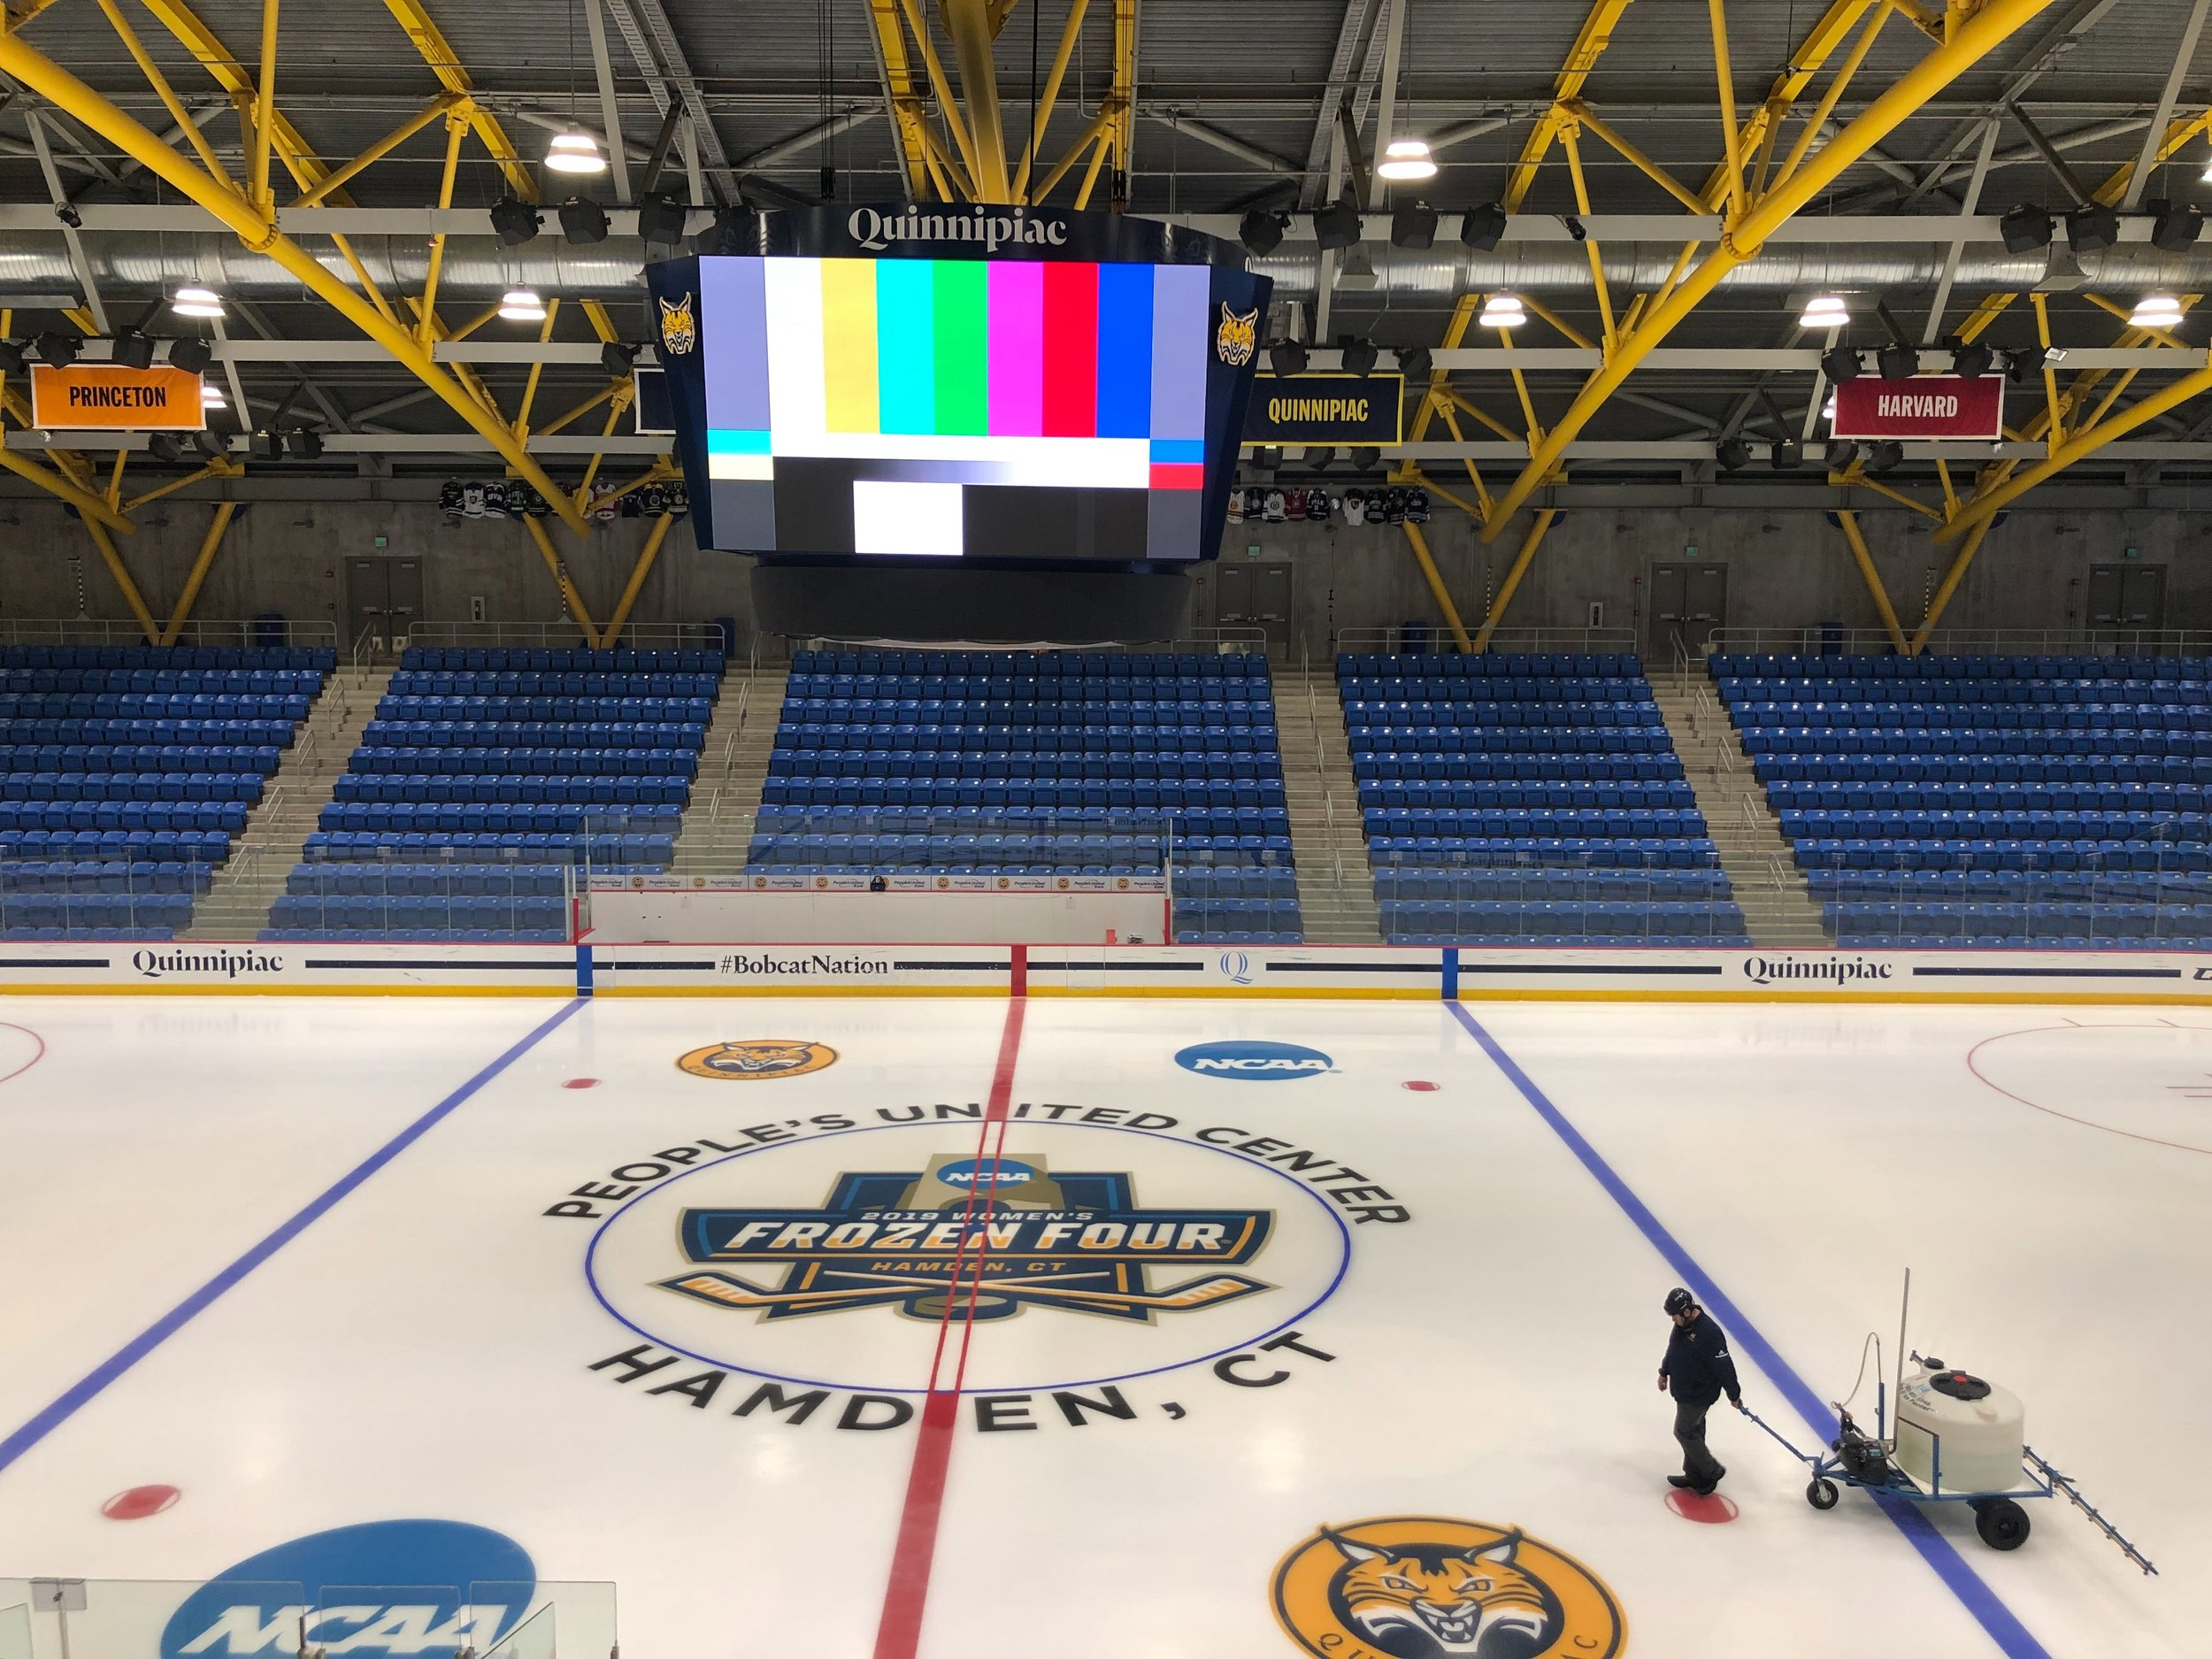 Quinnipiac will be hosting the Women's Frozen Four for the second time in the last five years.